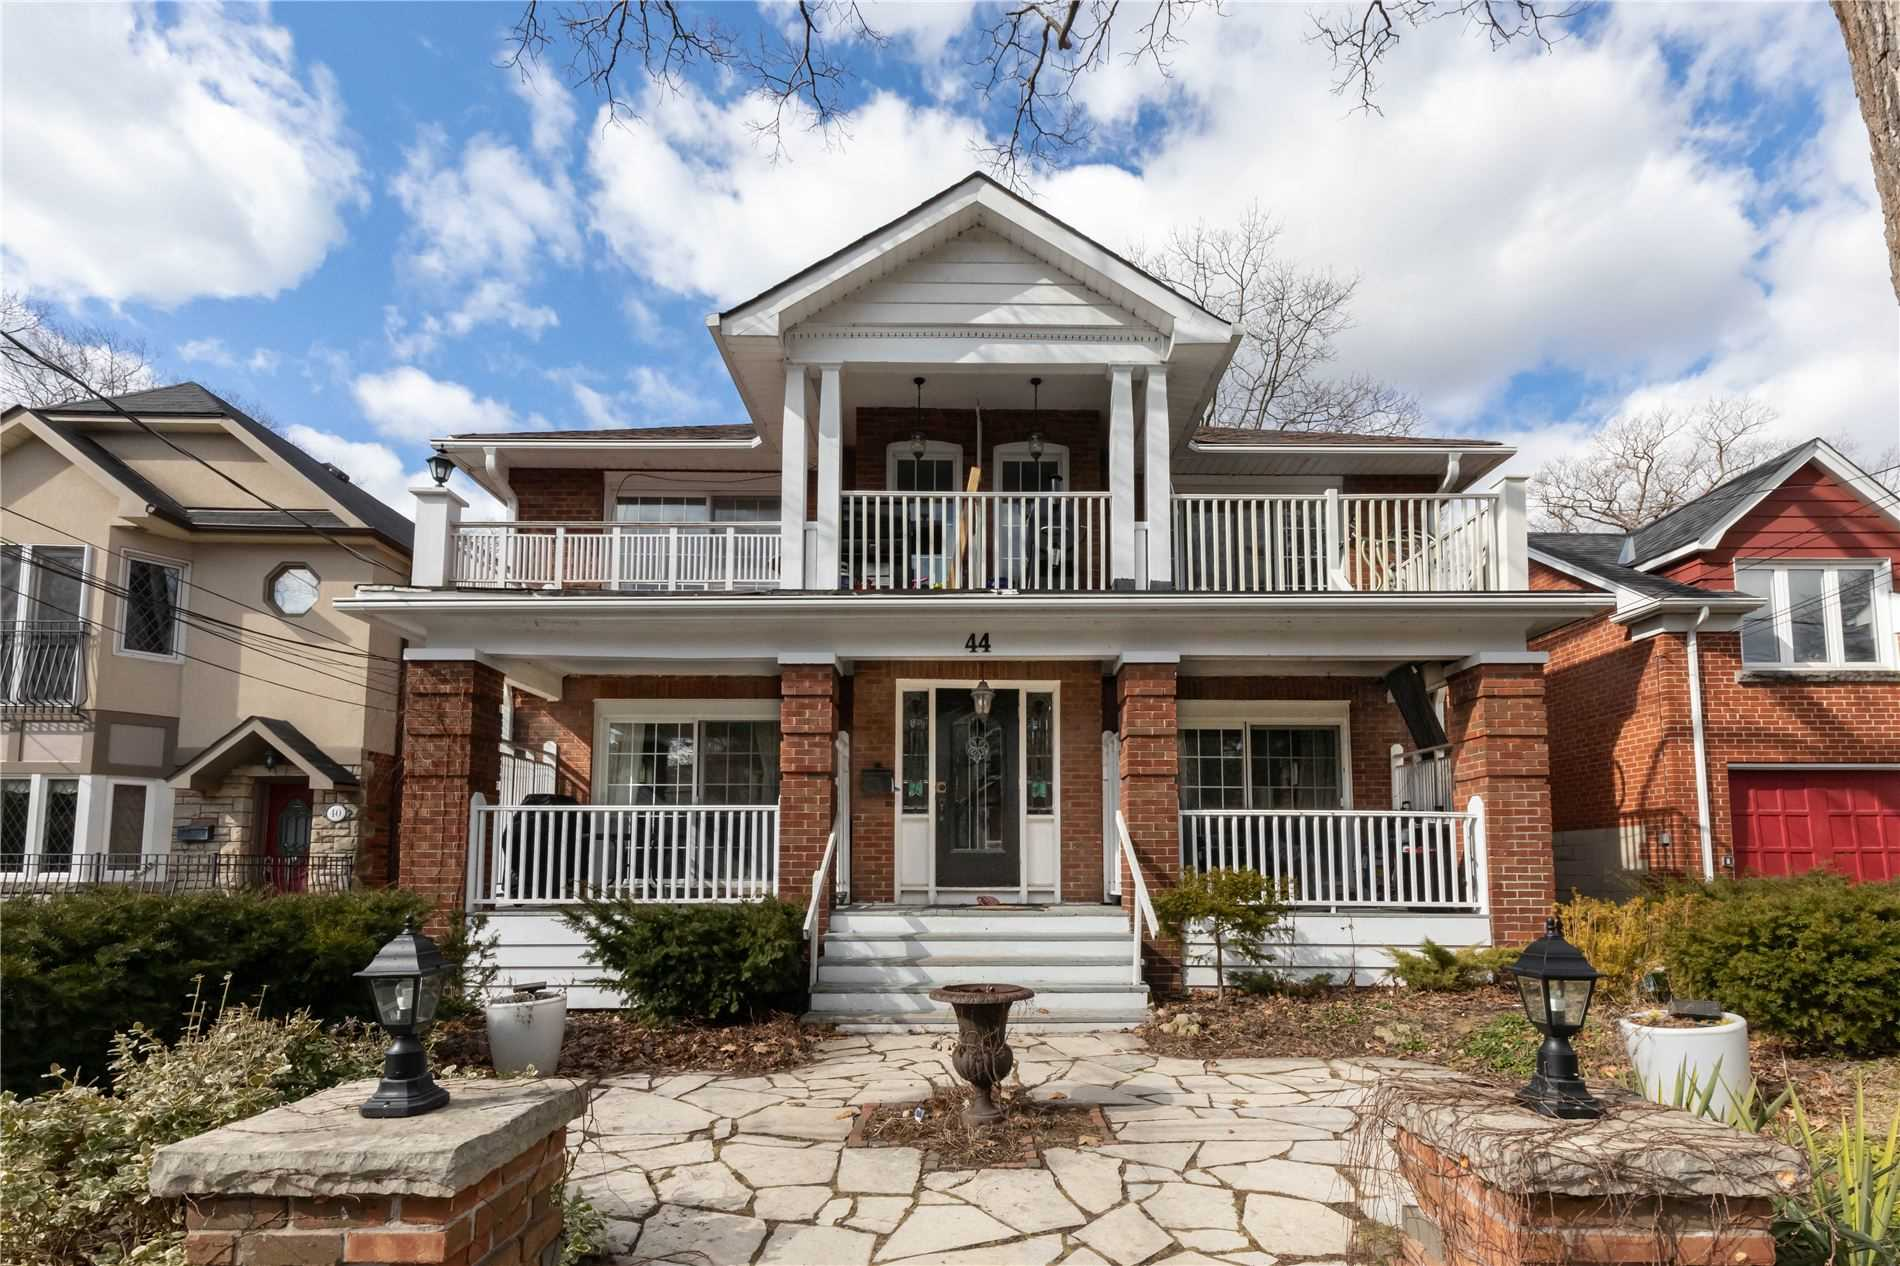 44 Courcelette Rd, Toronto, Ontario M1N 2S8, 8 Bedrooms Bedrooms, 20 Rooms Rooms,7 BathroomsBathrooms,Multiplex,For Sale,Courcelette,E4855825